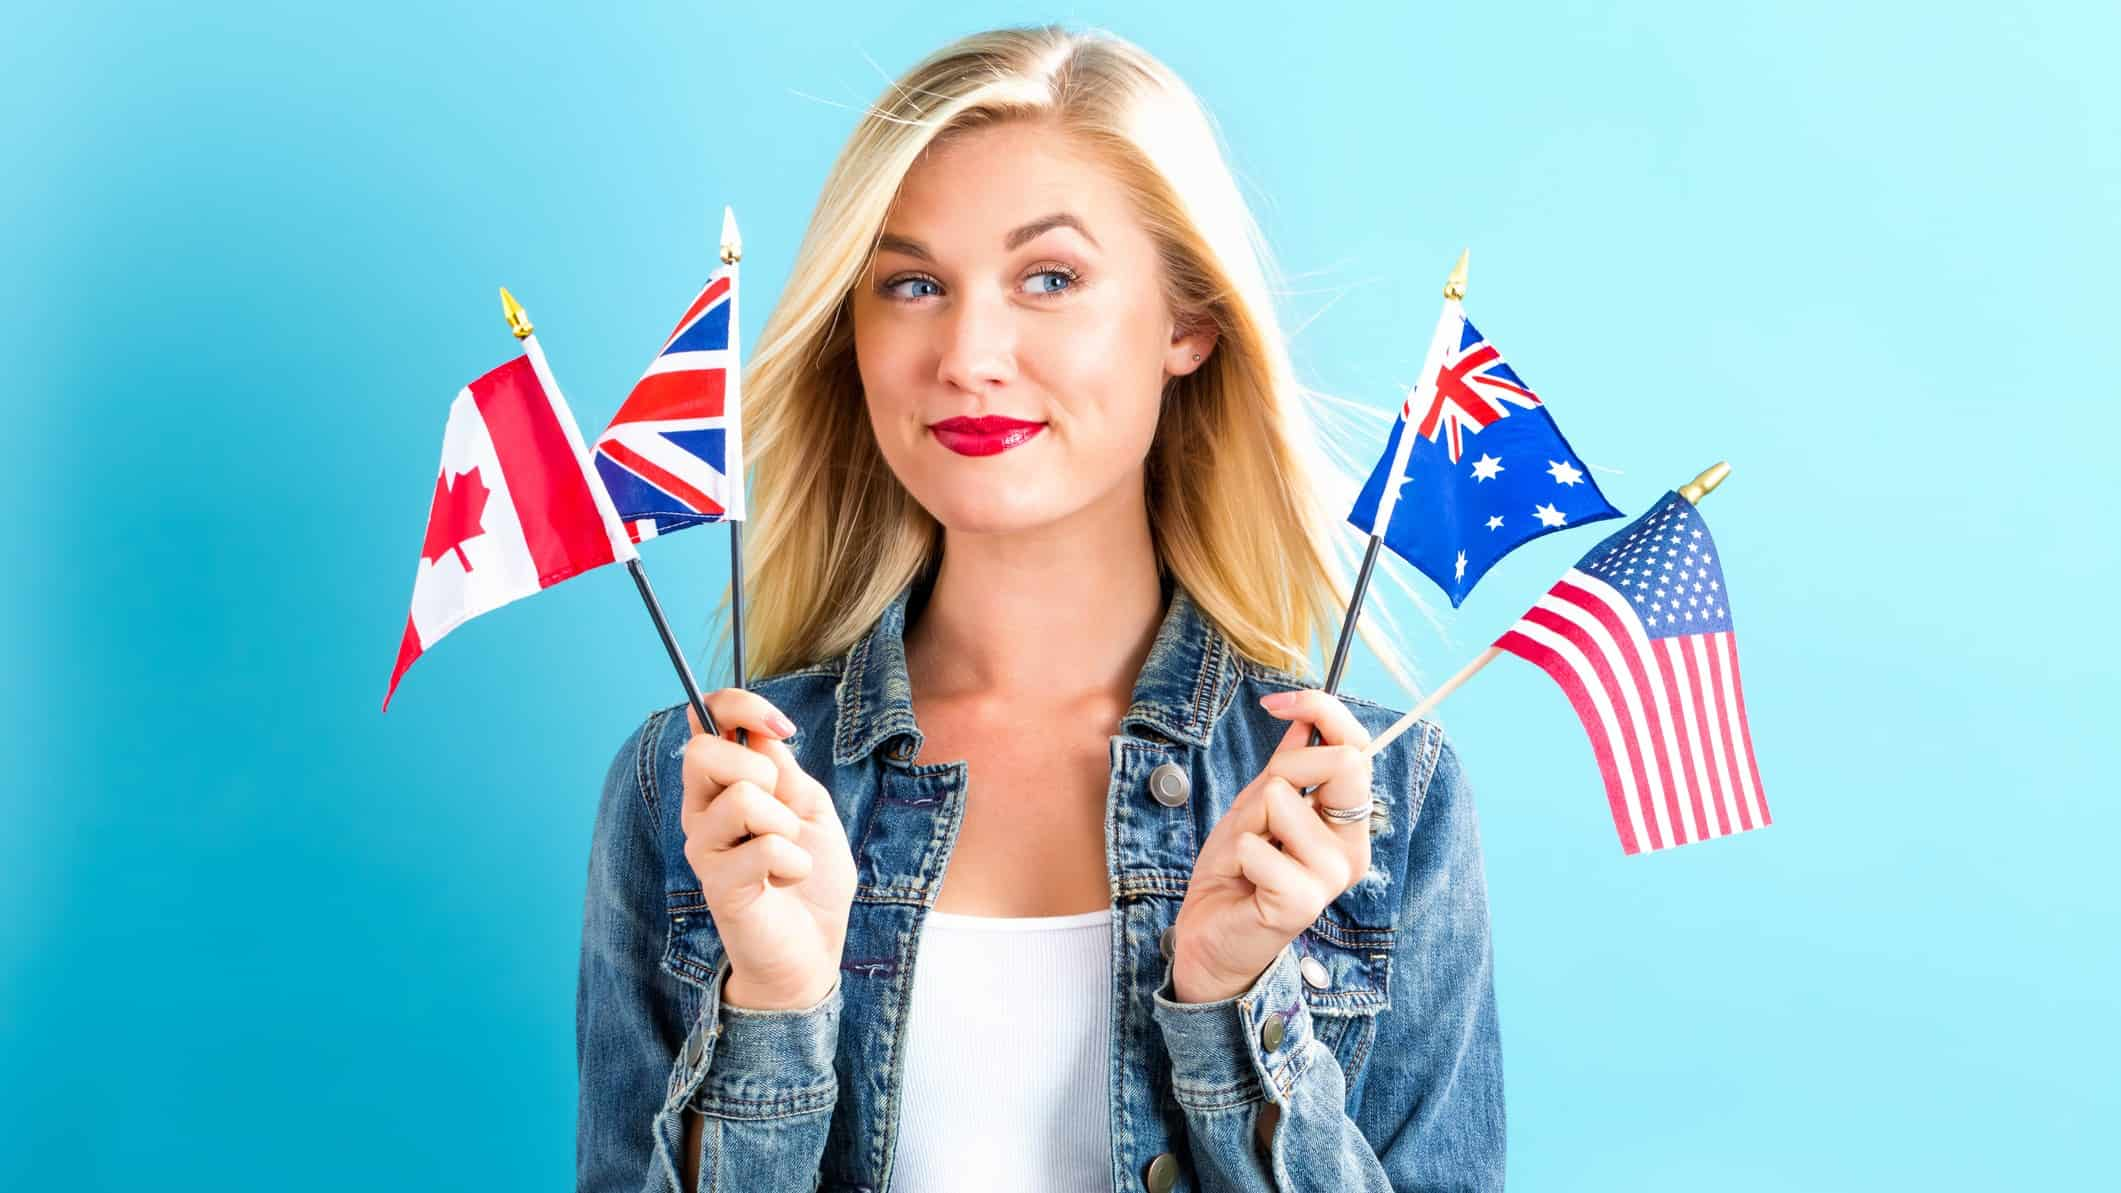 comparing asx 200 to global indexes represented by woman holding up multiple countries' flags